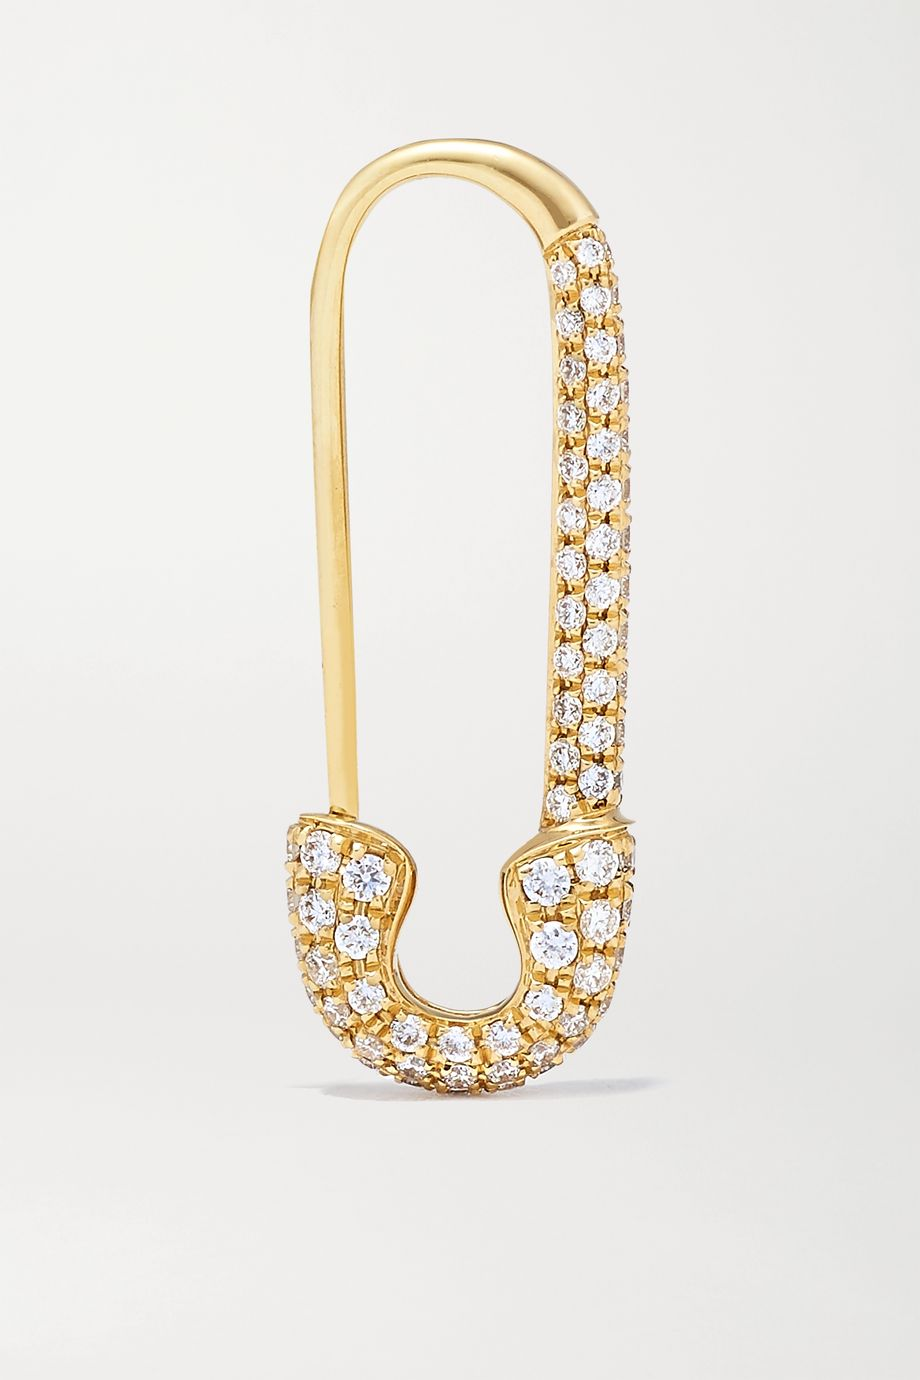 Anita Ko Safety Pin 18-karat gold diamond earring